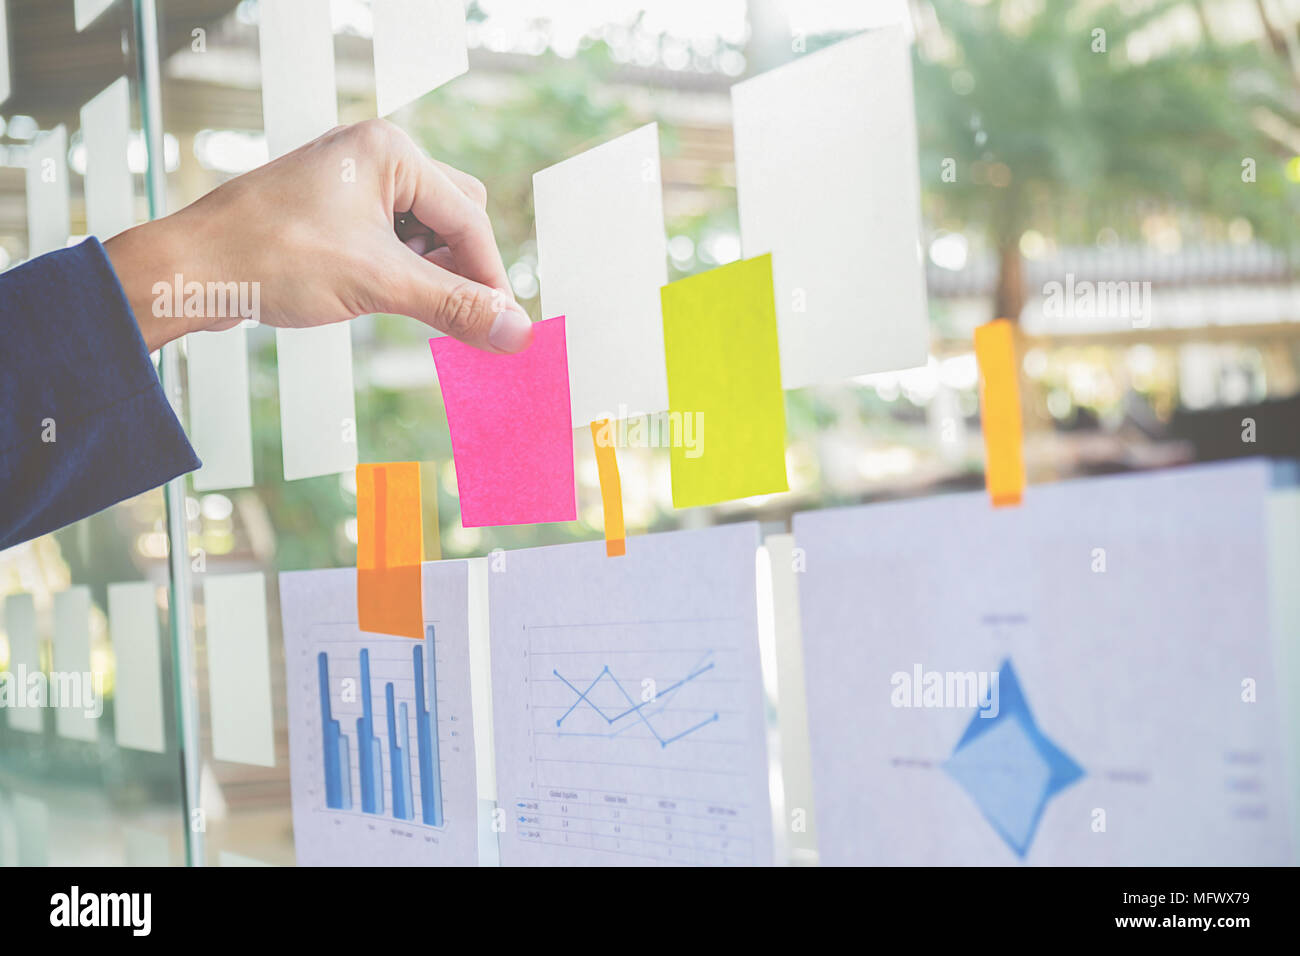 Note paper reminder schedule board. Business people meeting and use post it notes to share idea. Discussing - business, teamwork, brainstorming concep - Stock Image